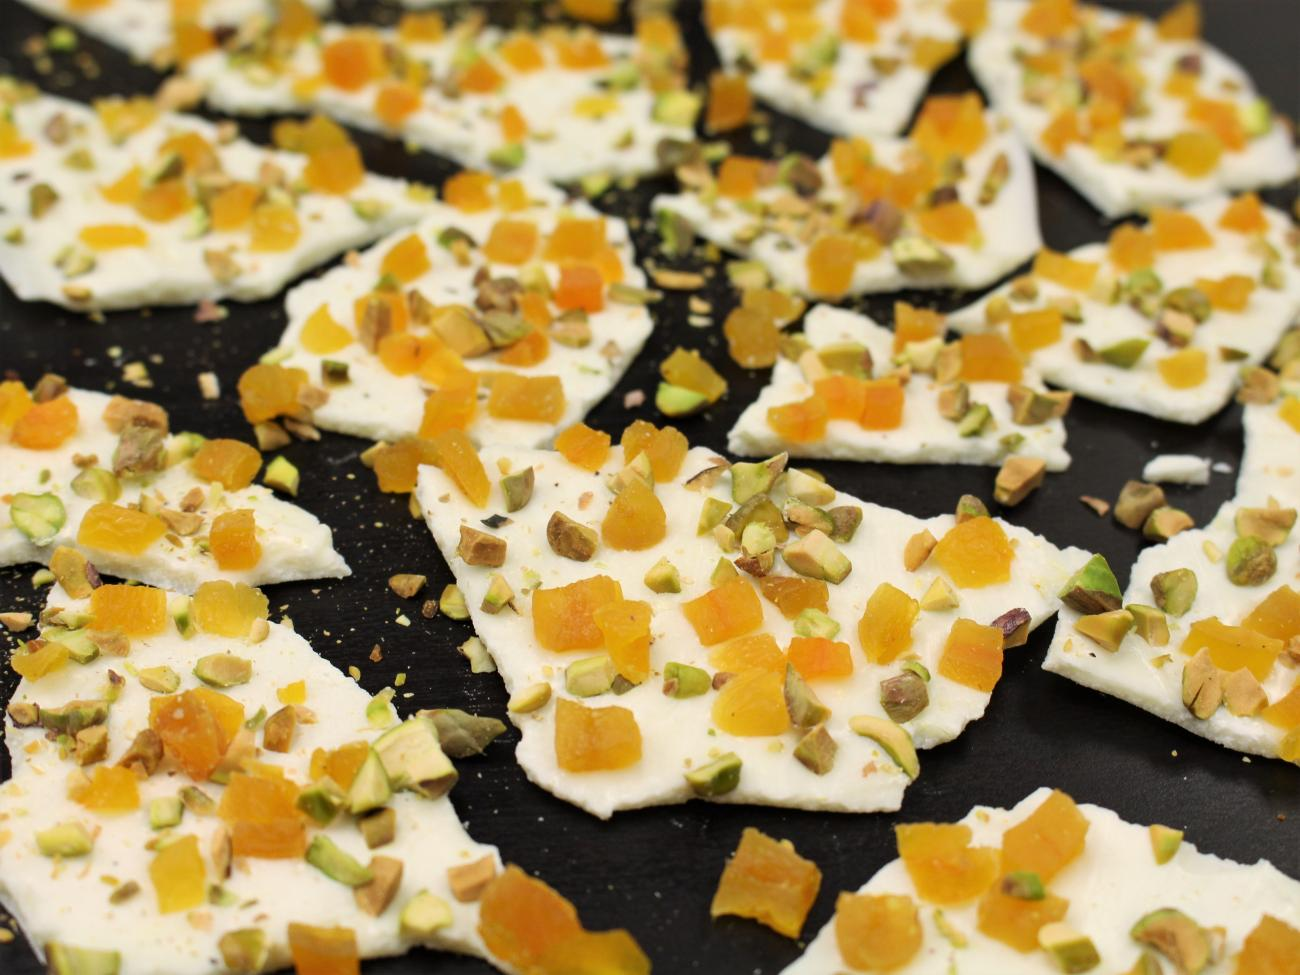 Recipe for Apricot and Pistachio Bark